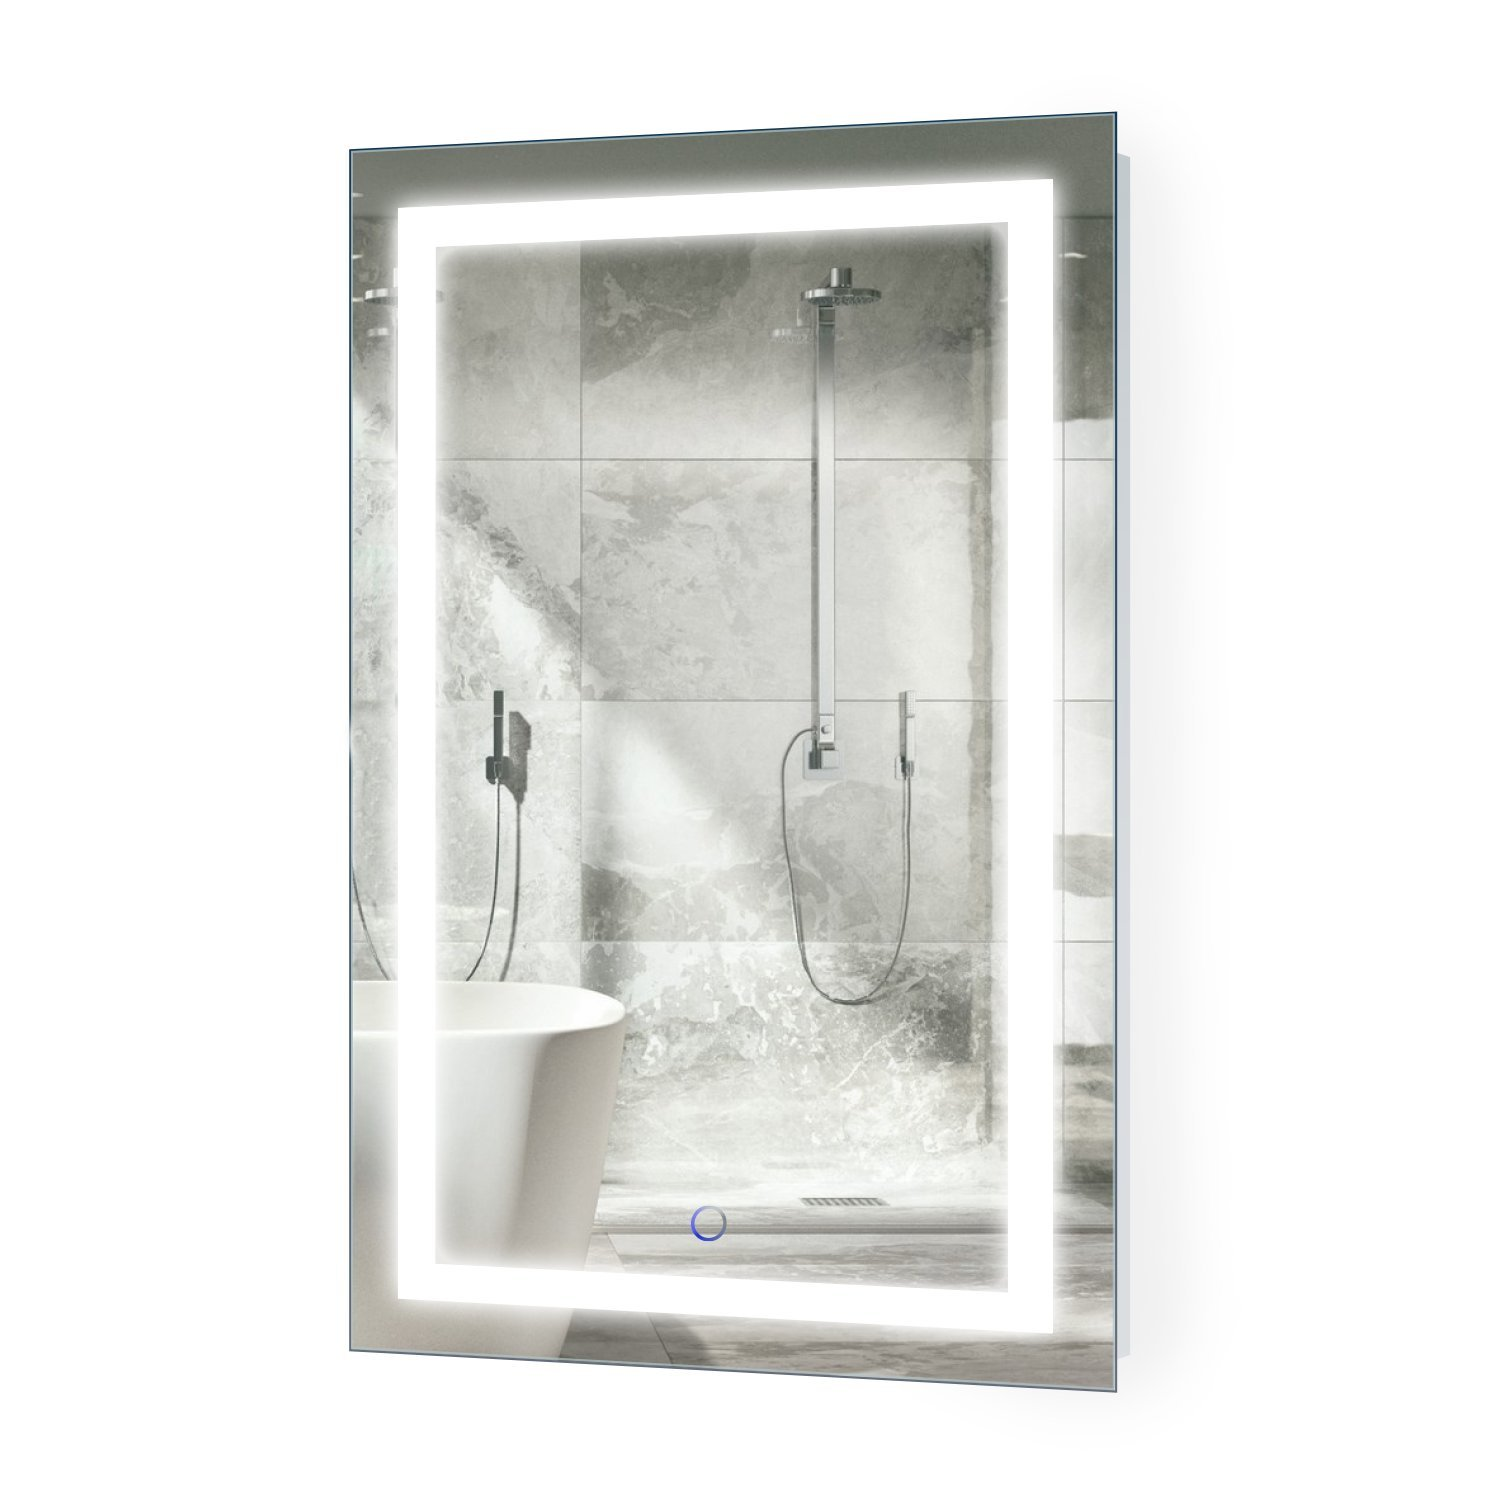 Wall Mount Vertical or Horizontal Installation Icon2032 Lighted Vanity Mirror Includes Dimmer and Defogger Krugg LED Bathroom Mirror 20 Inch X 32 Inch